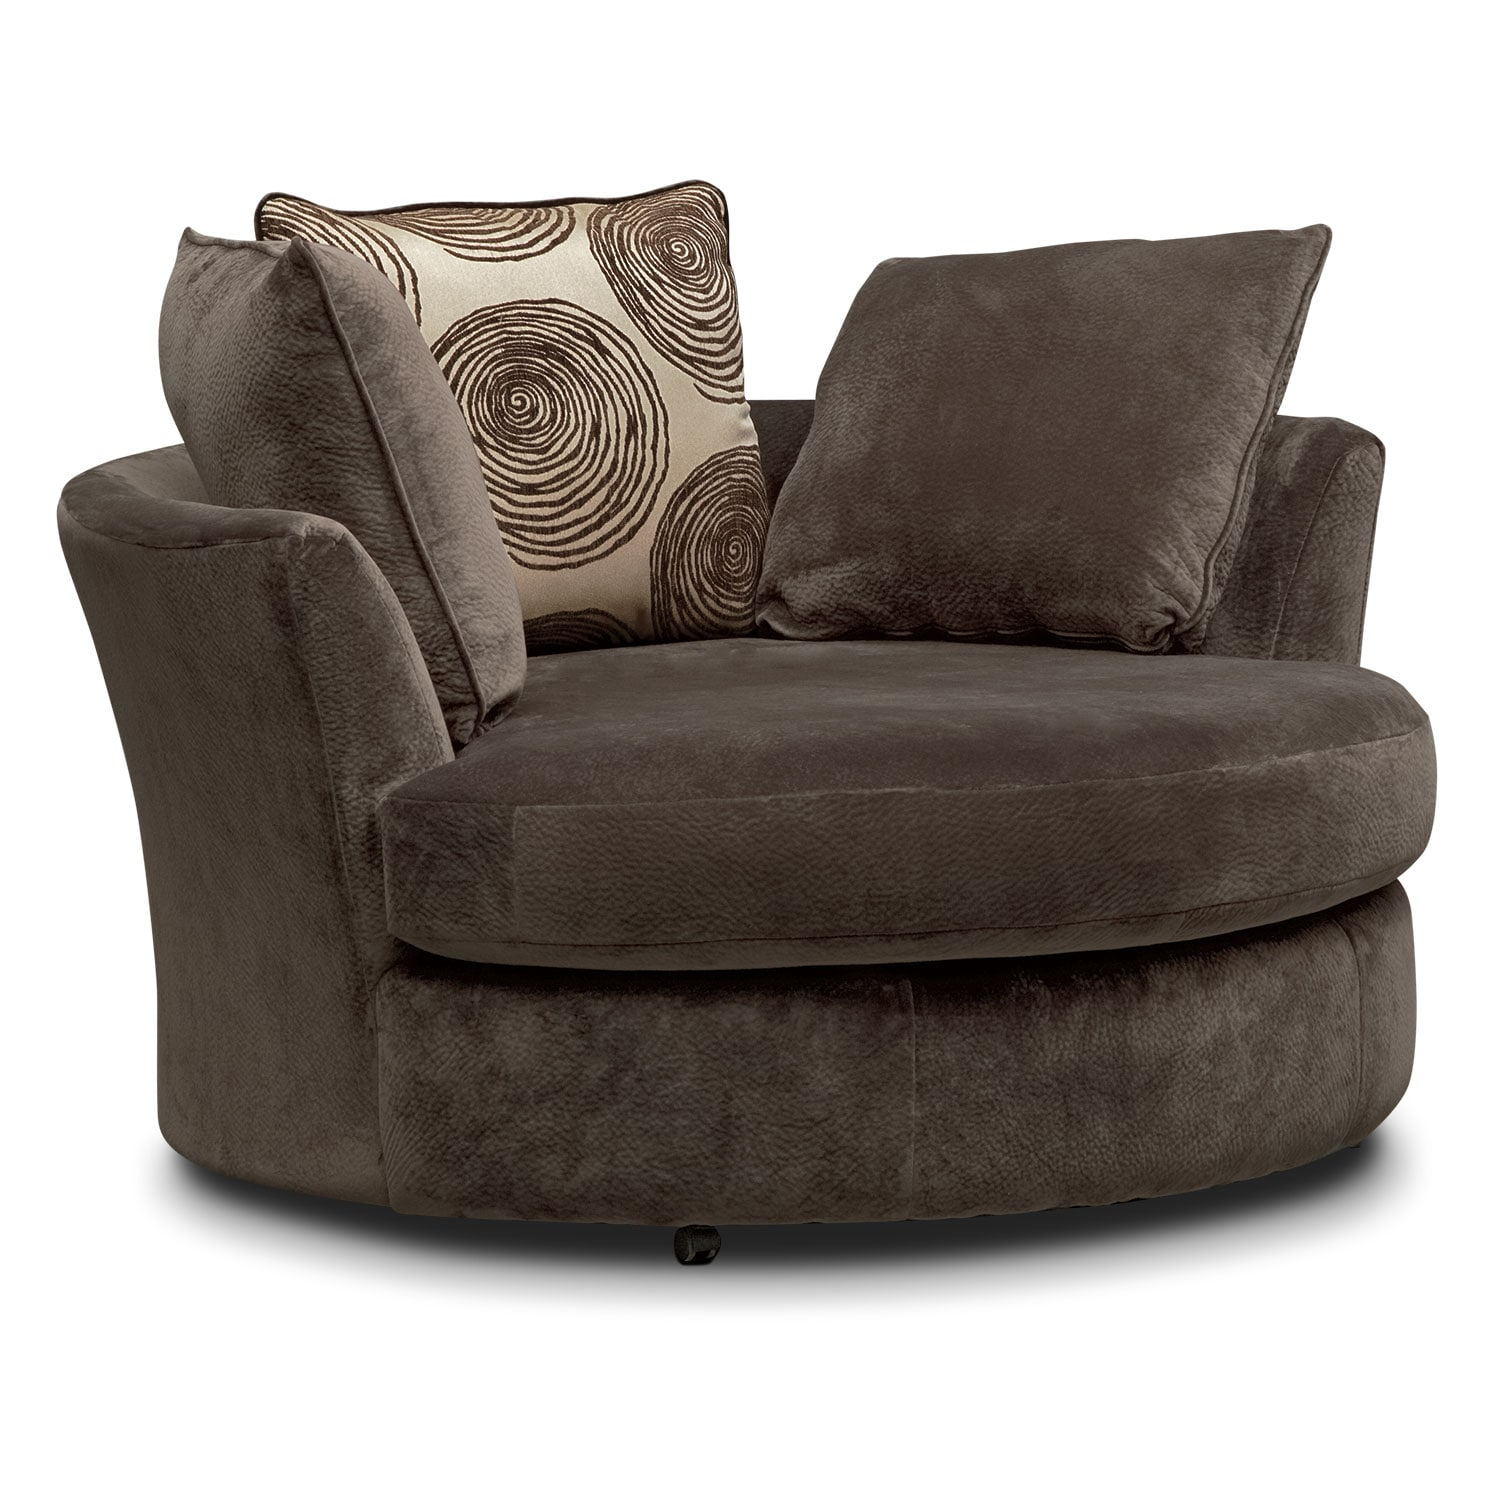 Living Room Furniture Cordelle Swivel Chair Chocolate Hover to zoom